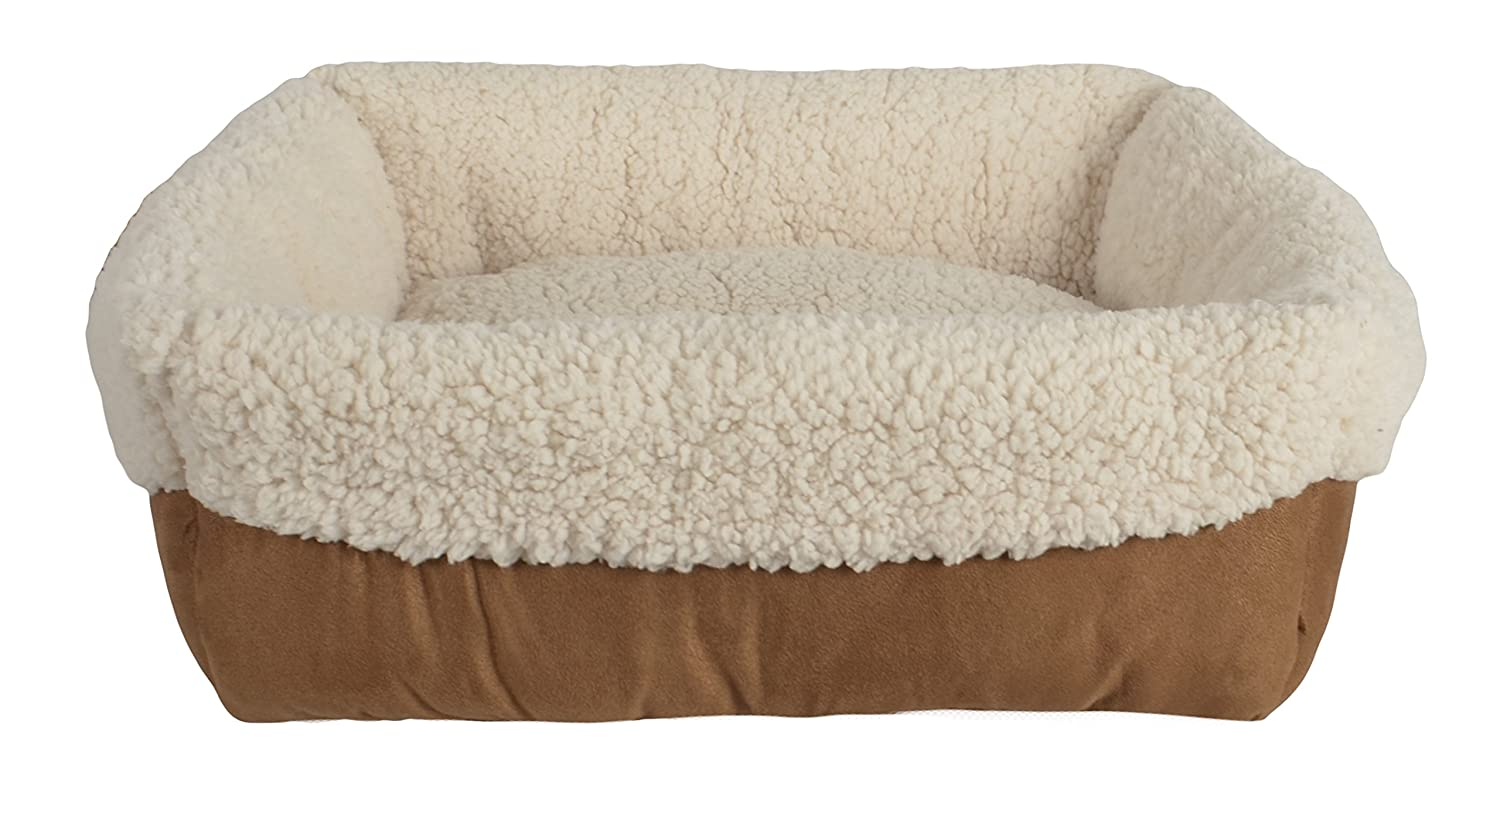 Pet Spaces Everyday Cuff Bed, 17 x 17 x 6